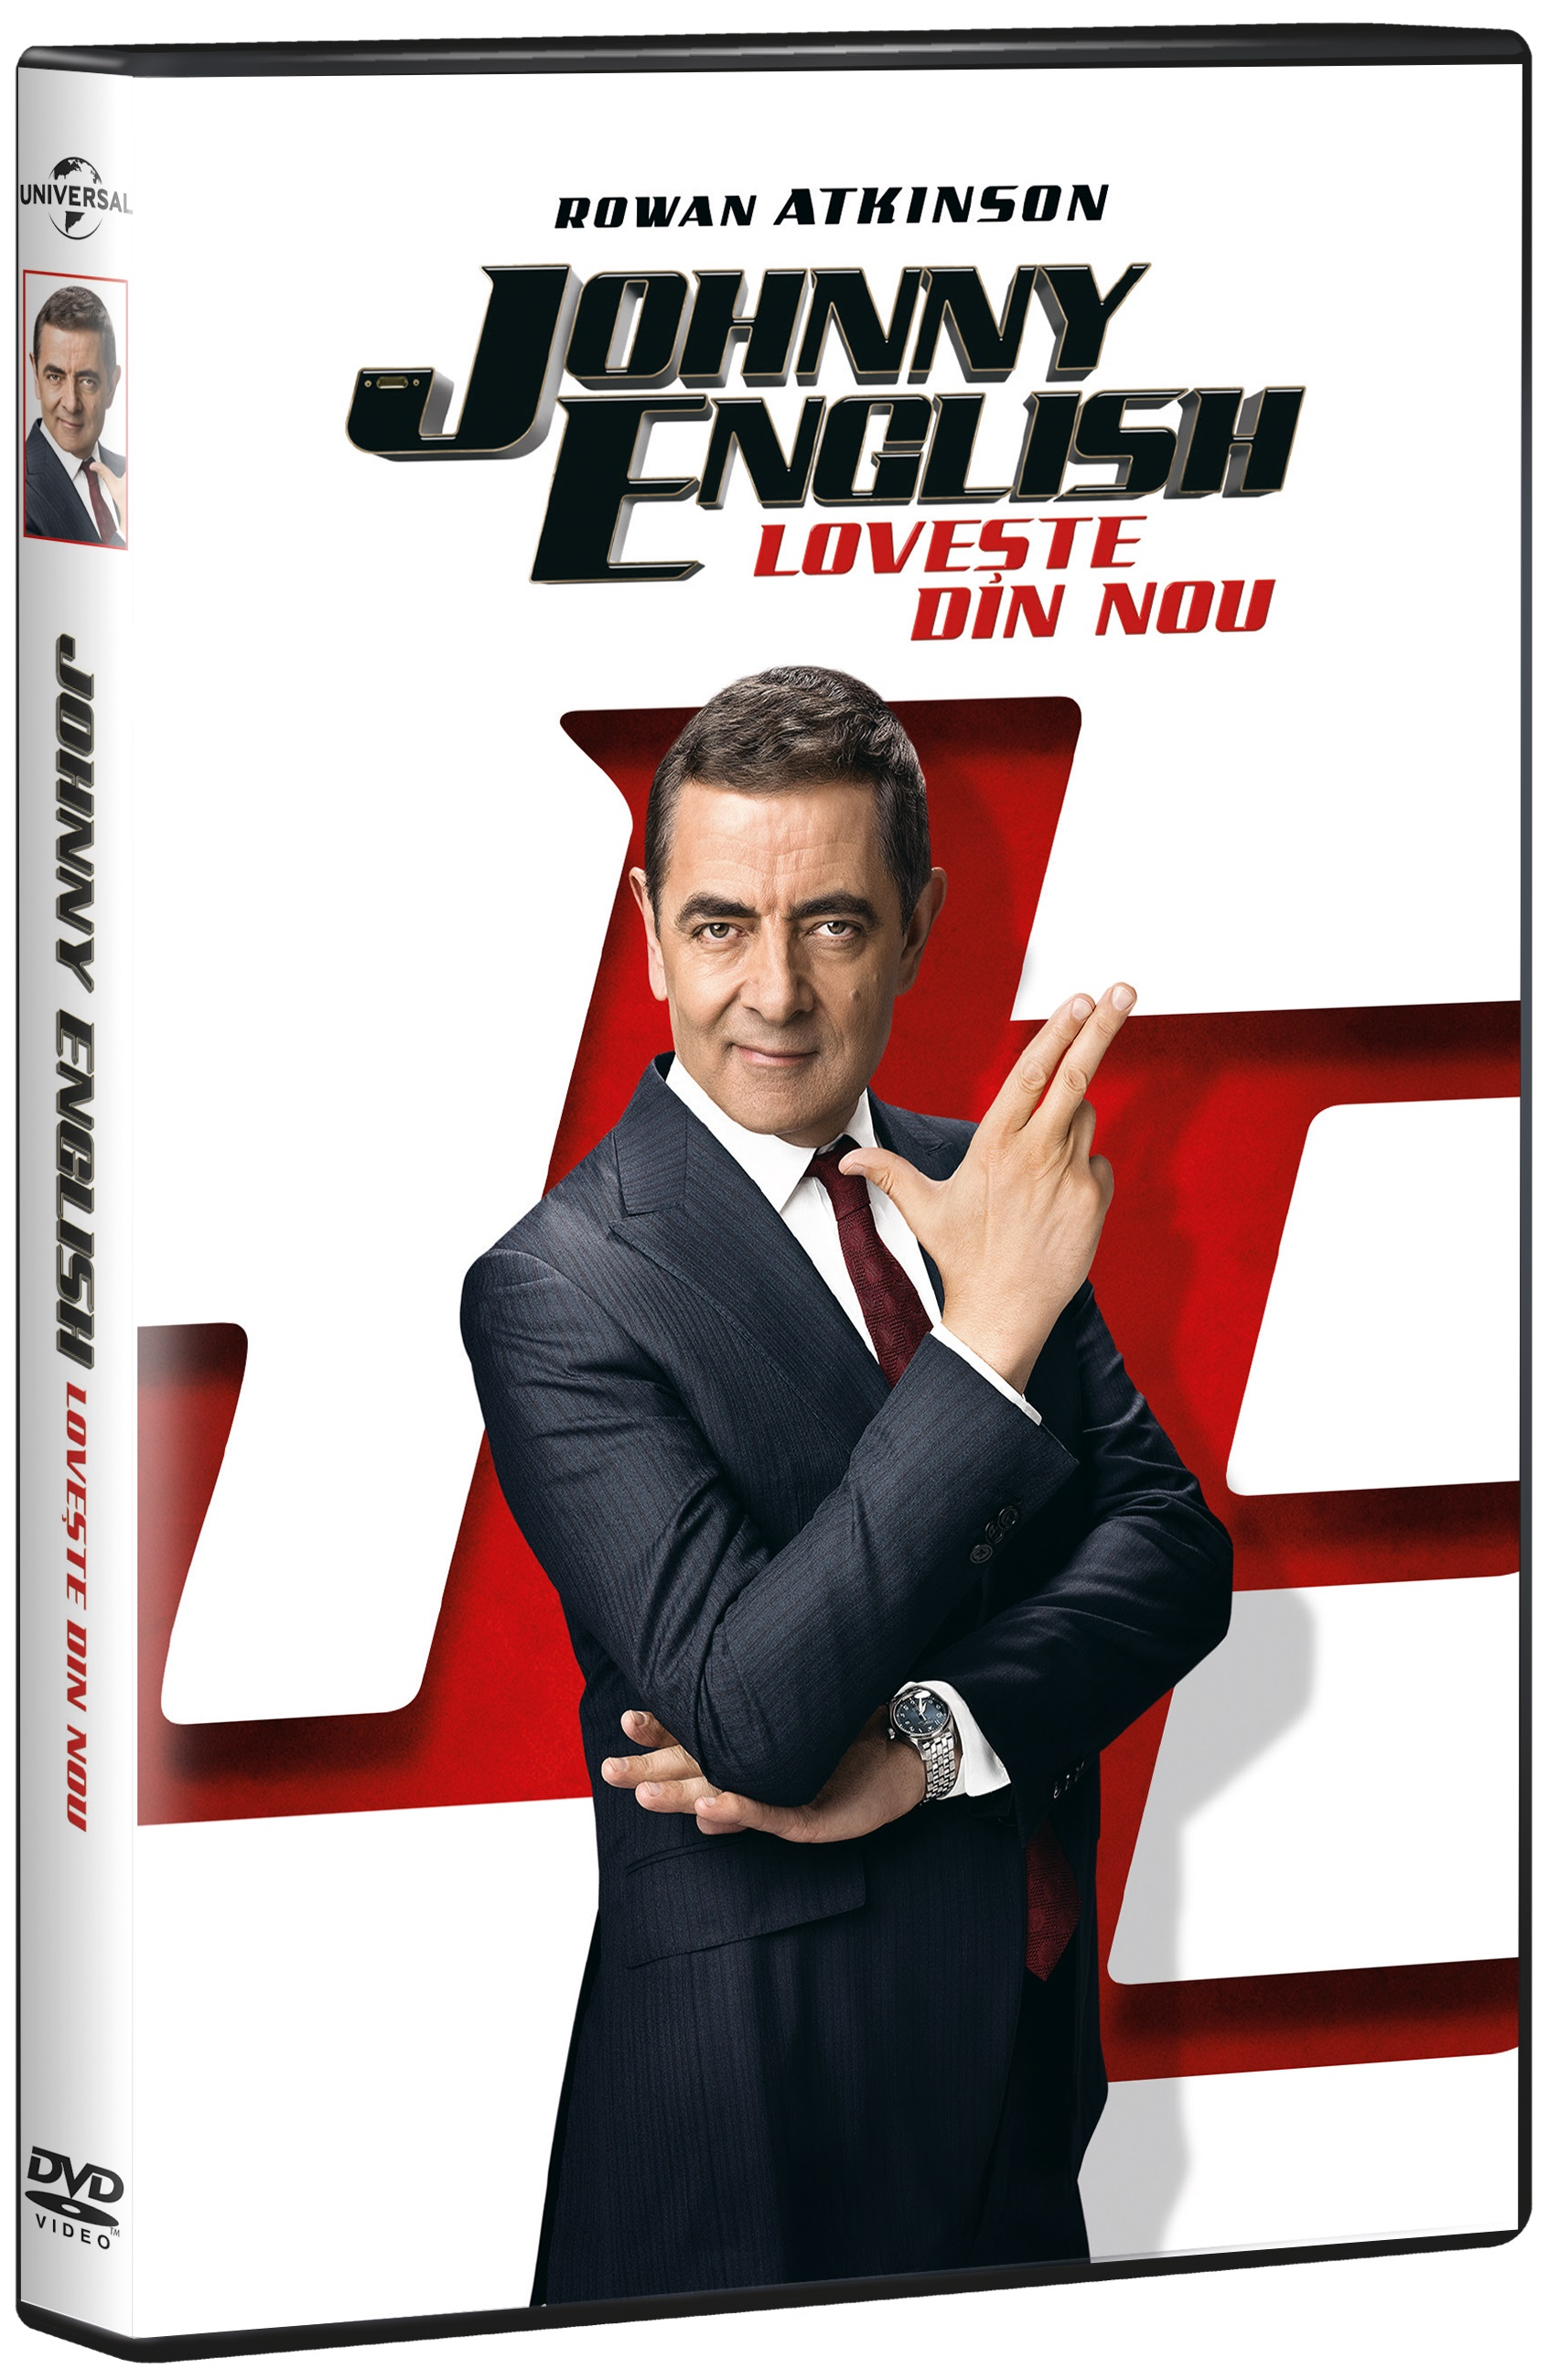 Johnny English loveste din nou / Johnny English Strikes Again thumbnail